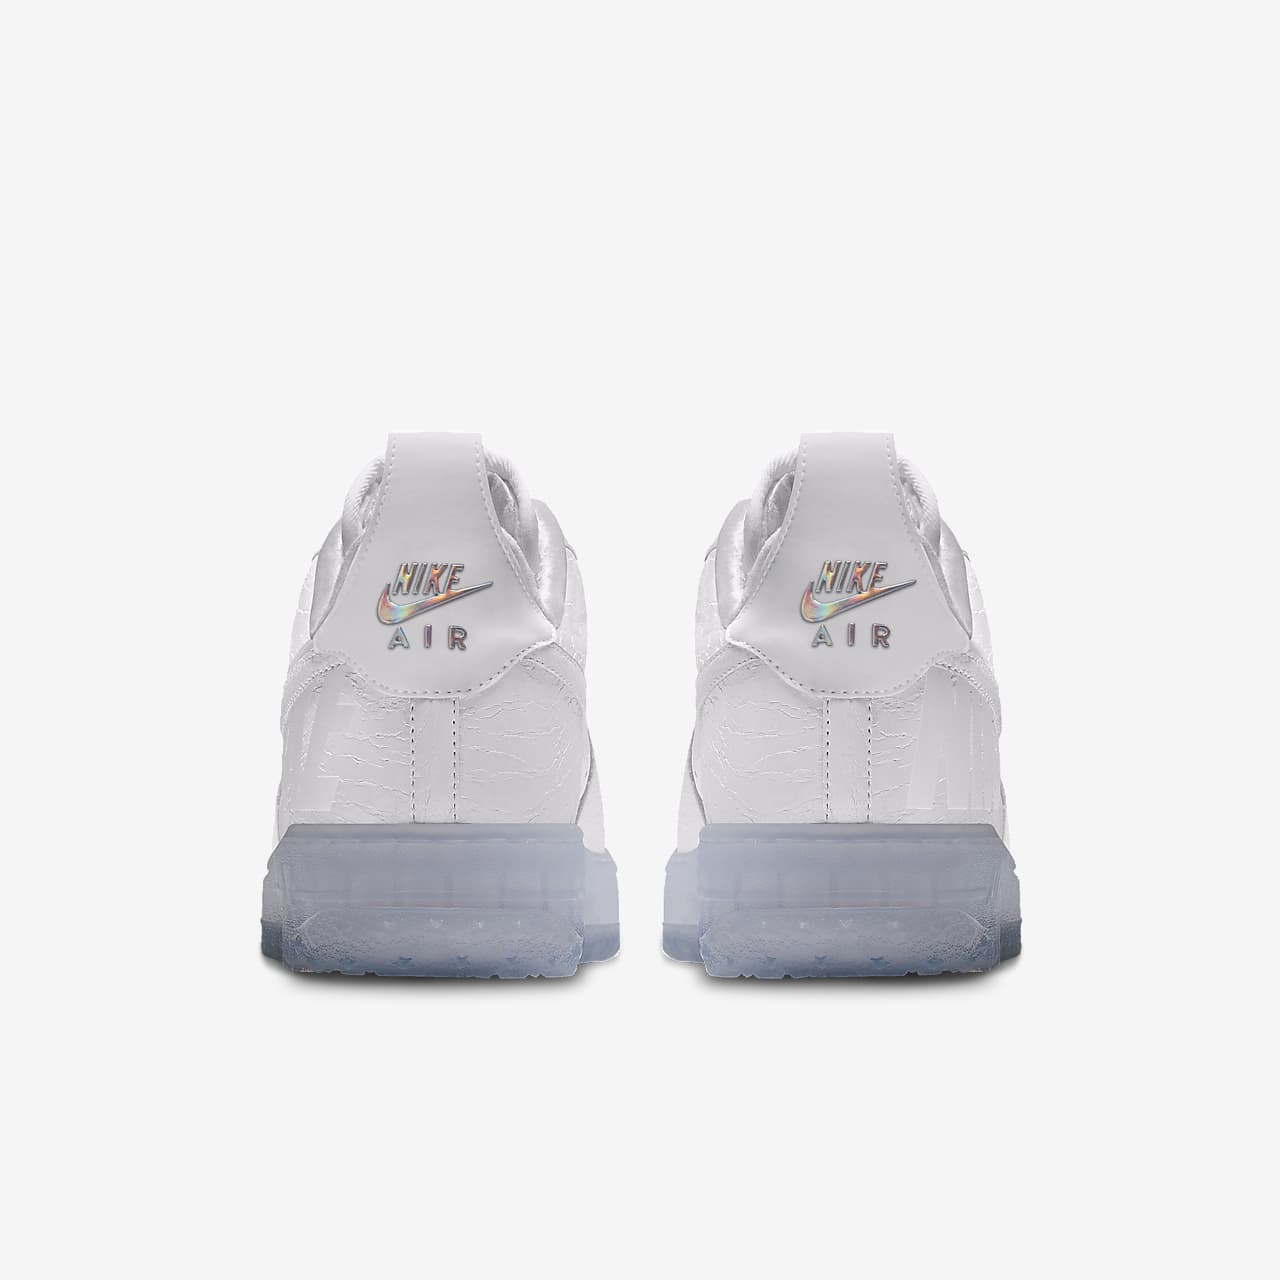 Nike Air Force 1 Low iD Winter White